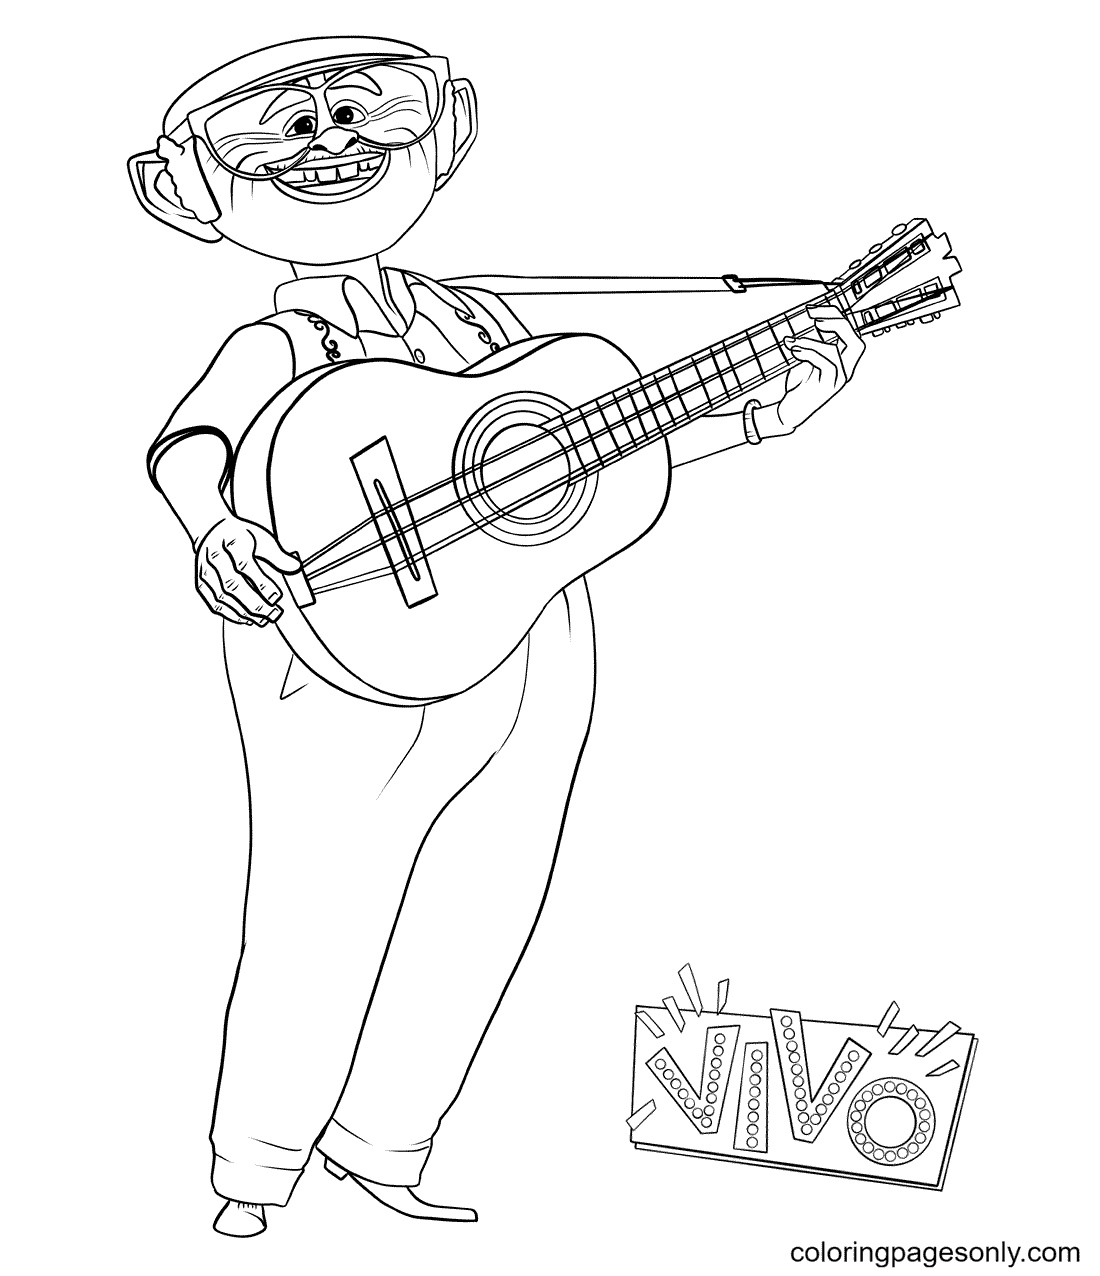 Andres with Guitar Coloring Page